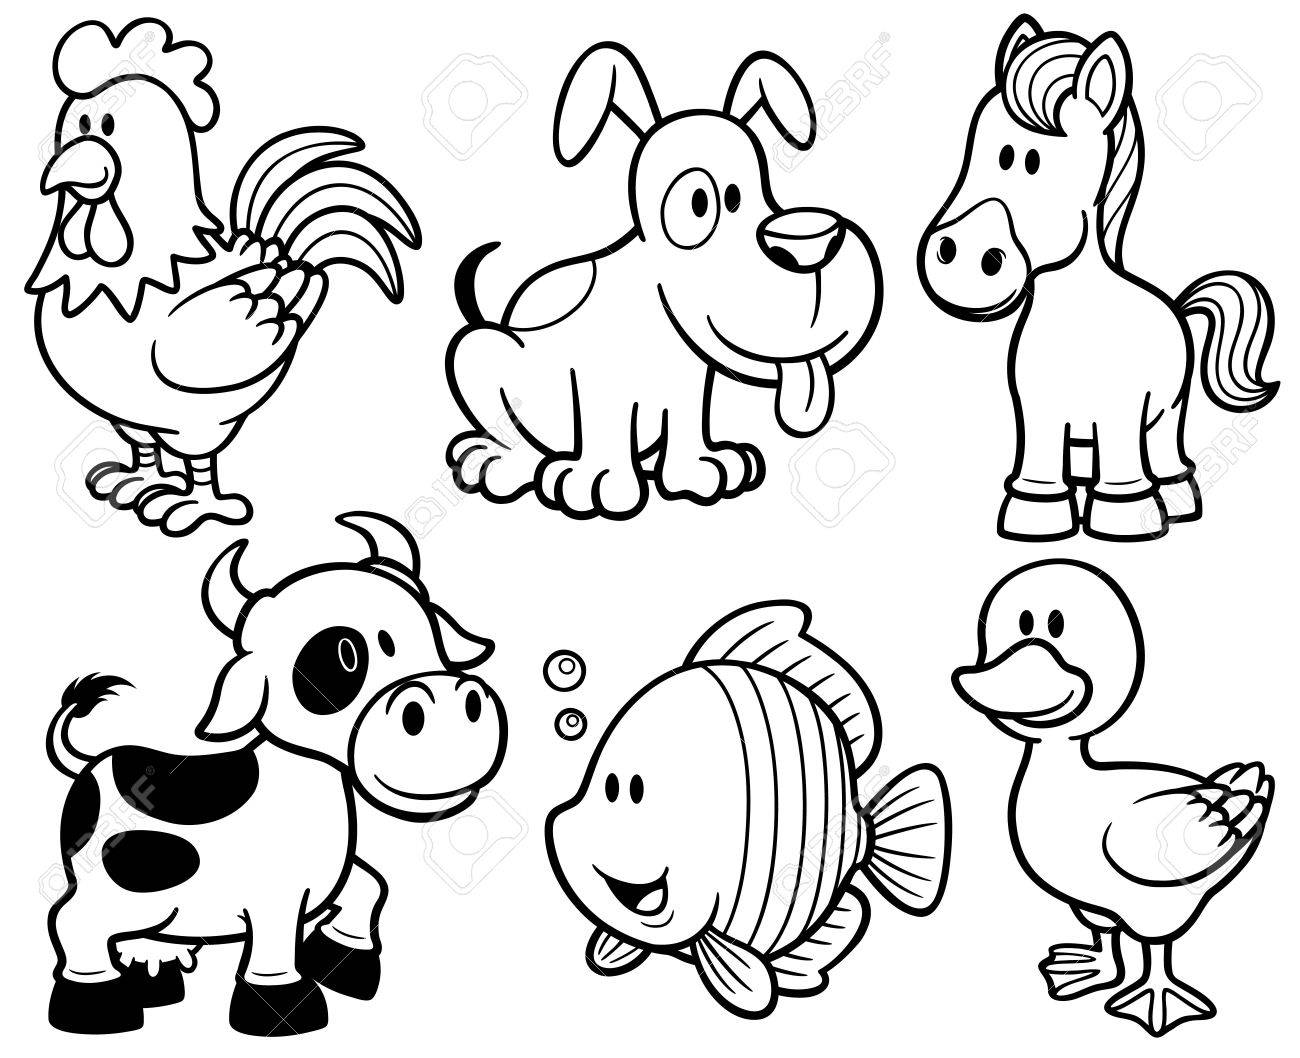 Vector Illustration Of Animals Cartoon - Coloring Book Royalty Free ...